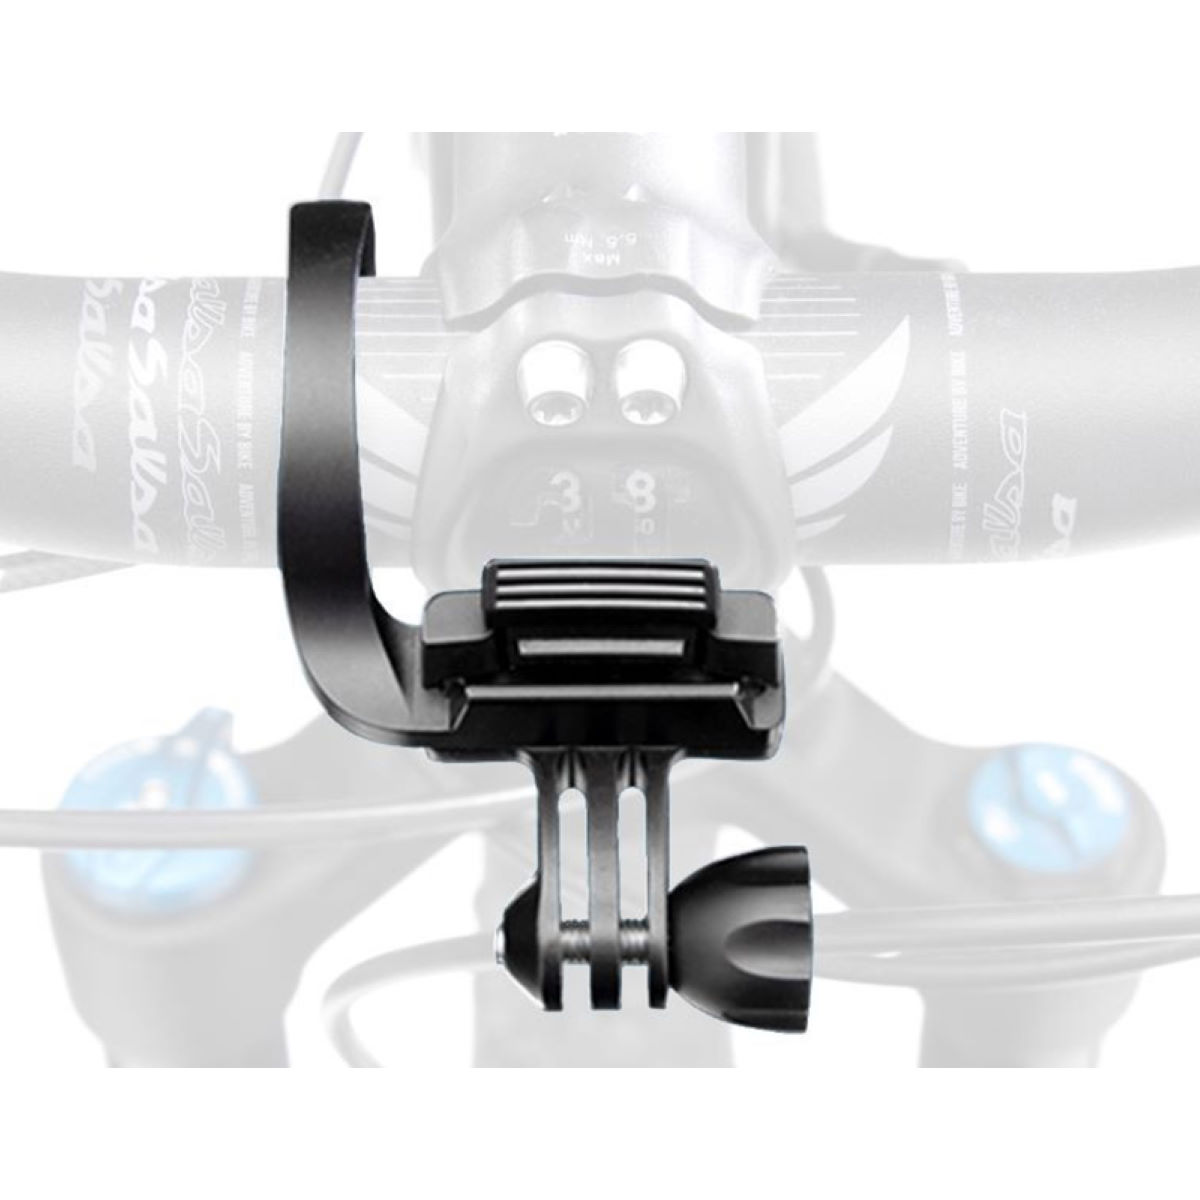 Stages Cycling Stages Cycling Dash 2 - Go Pro Accessory   Computer Mounts